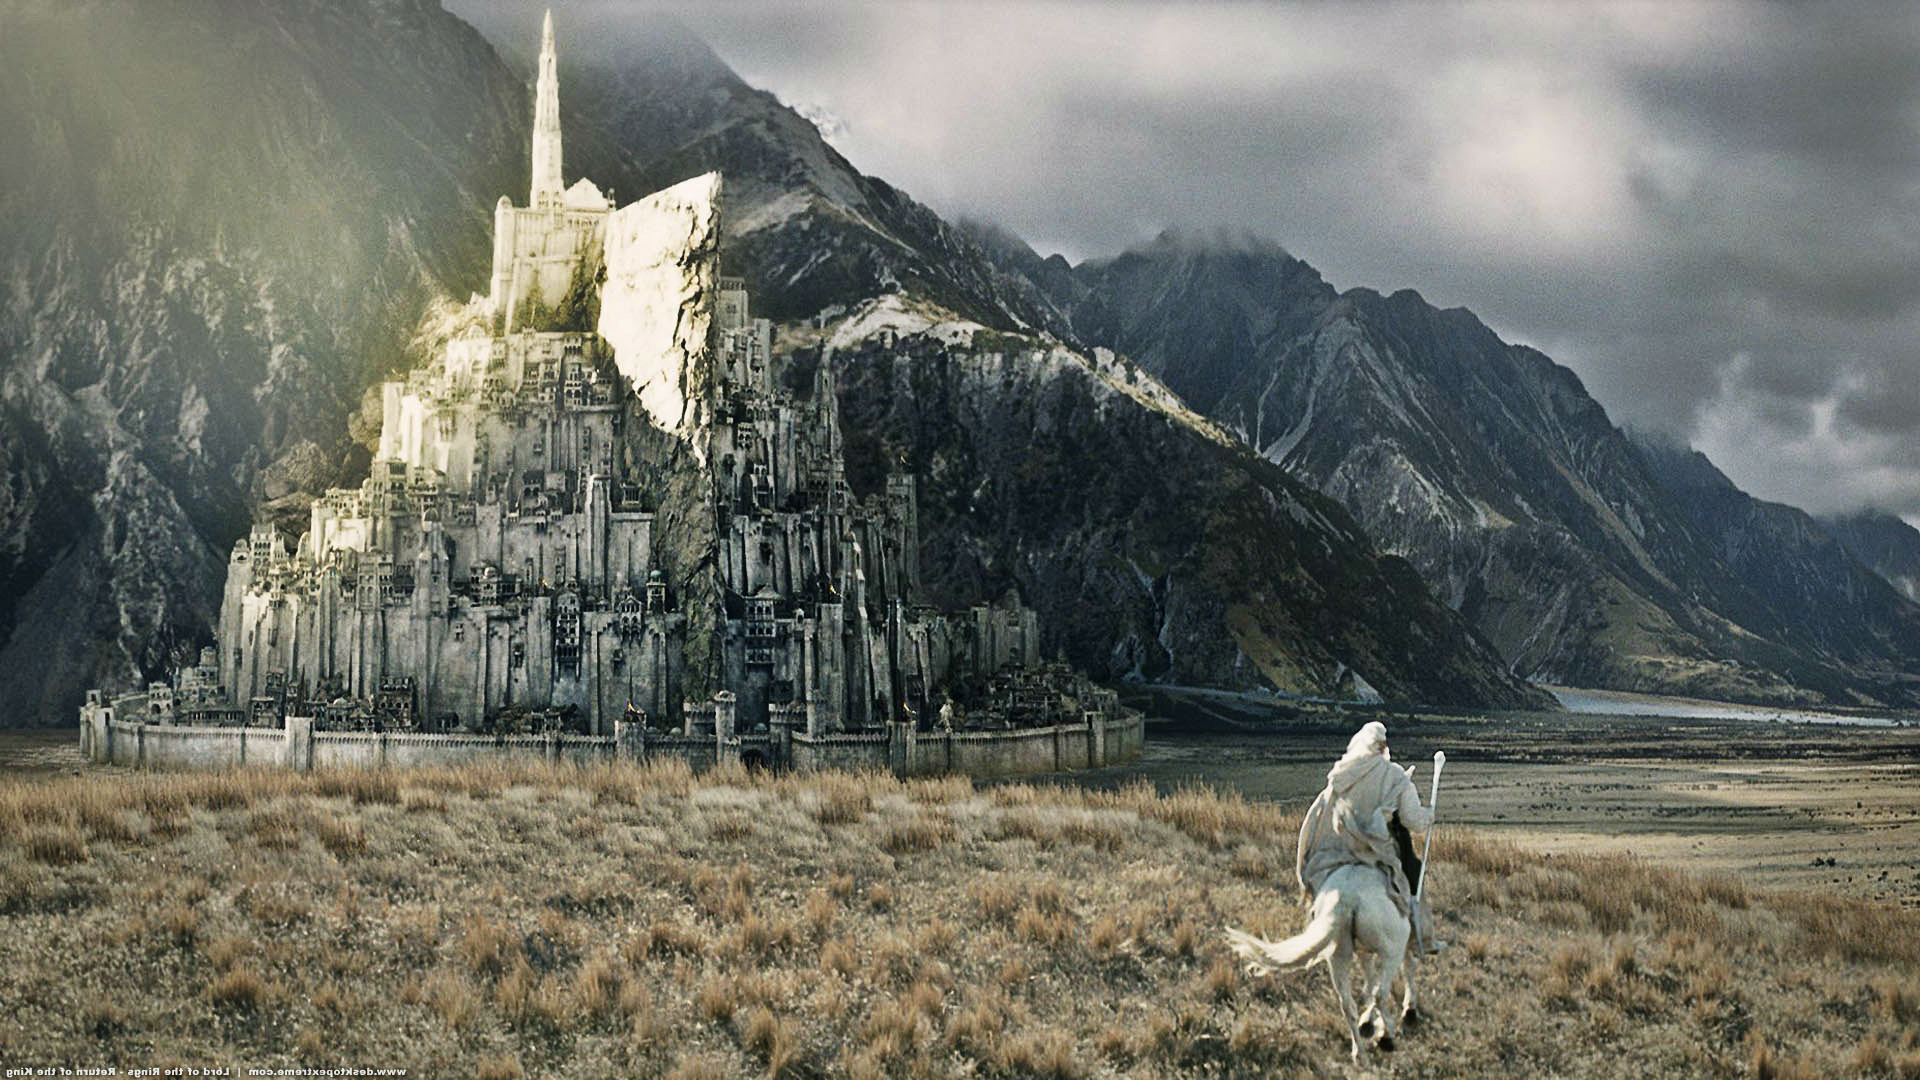 Lord Of The Rings Hd Wallpapers Top and High Quality HD 1920x1080